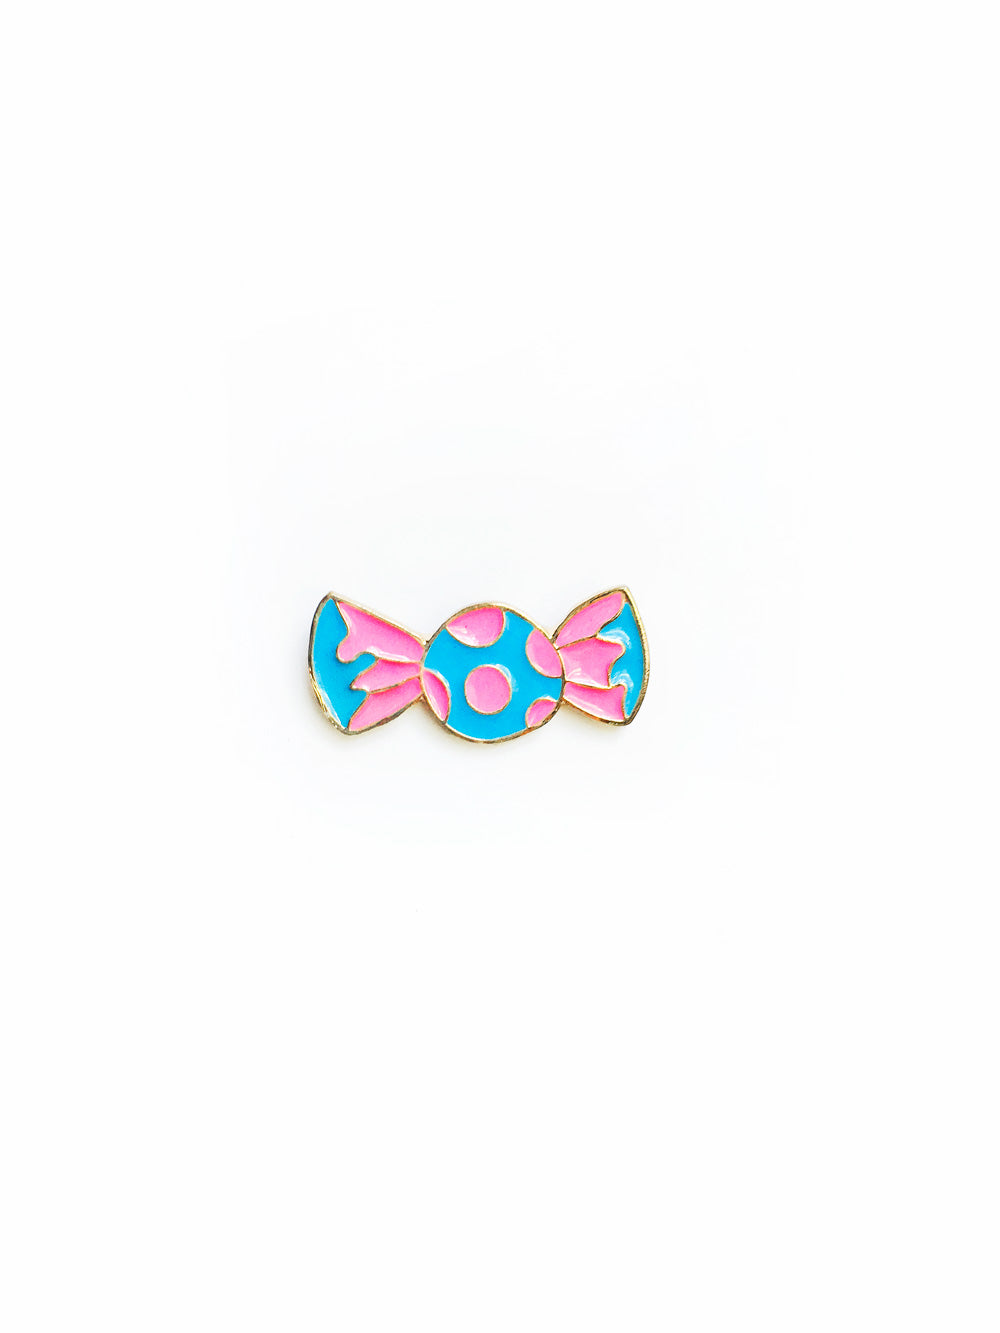 Candy Enamel Pin